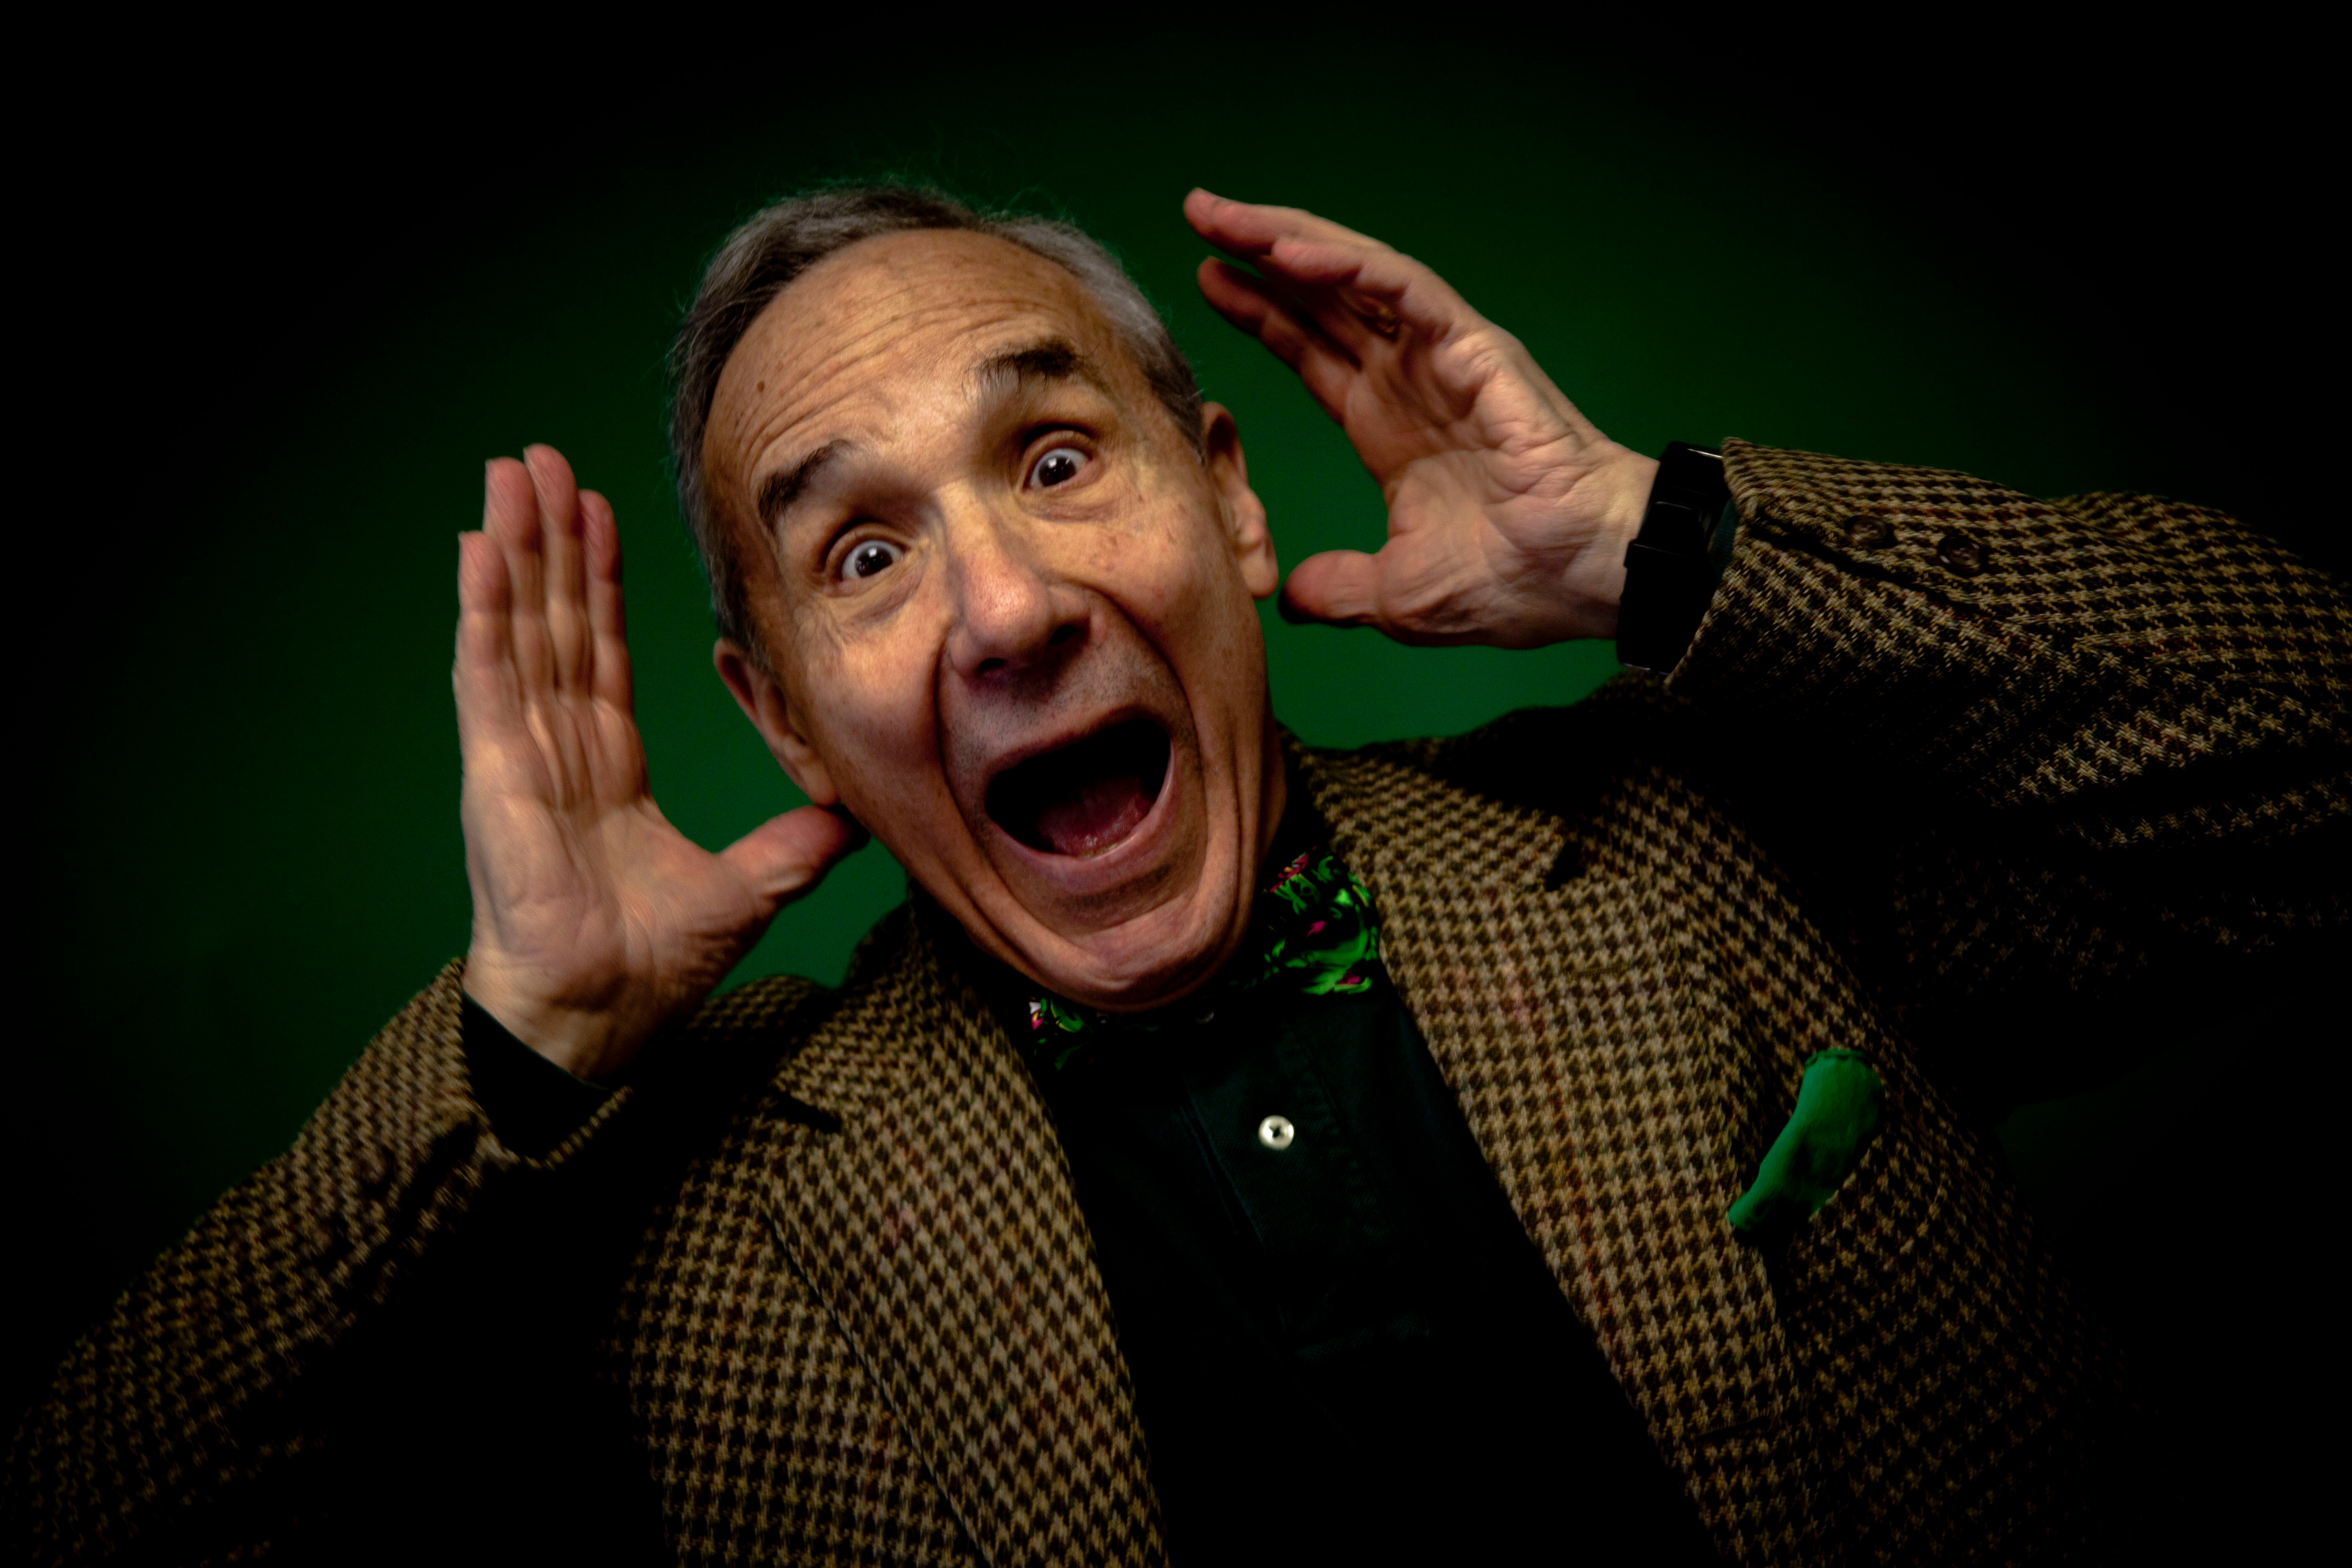 lloydkaufmantromabanner - Lloyd Kaufman and Troma Fans Shut Down By Police at Cannes!